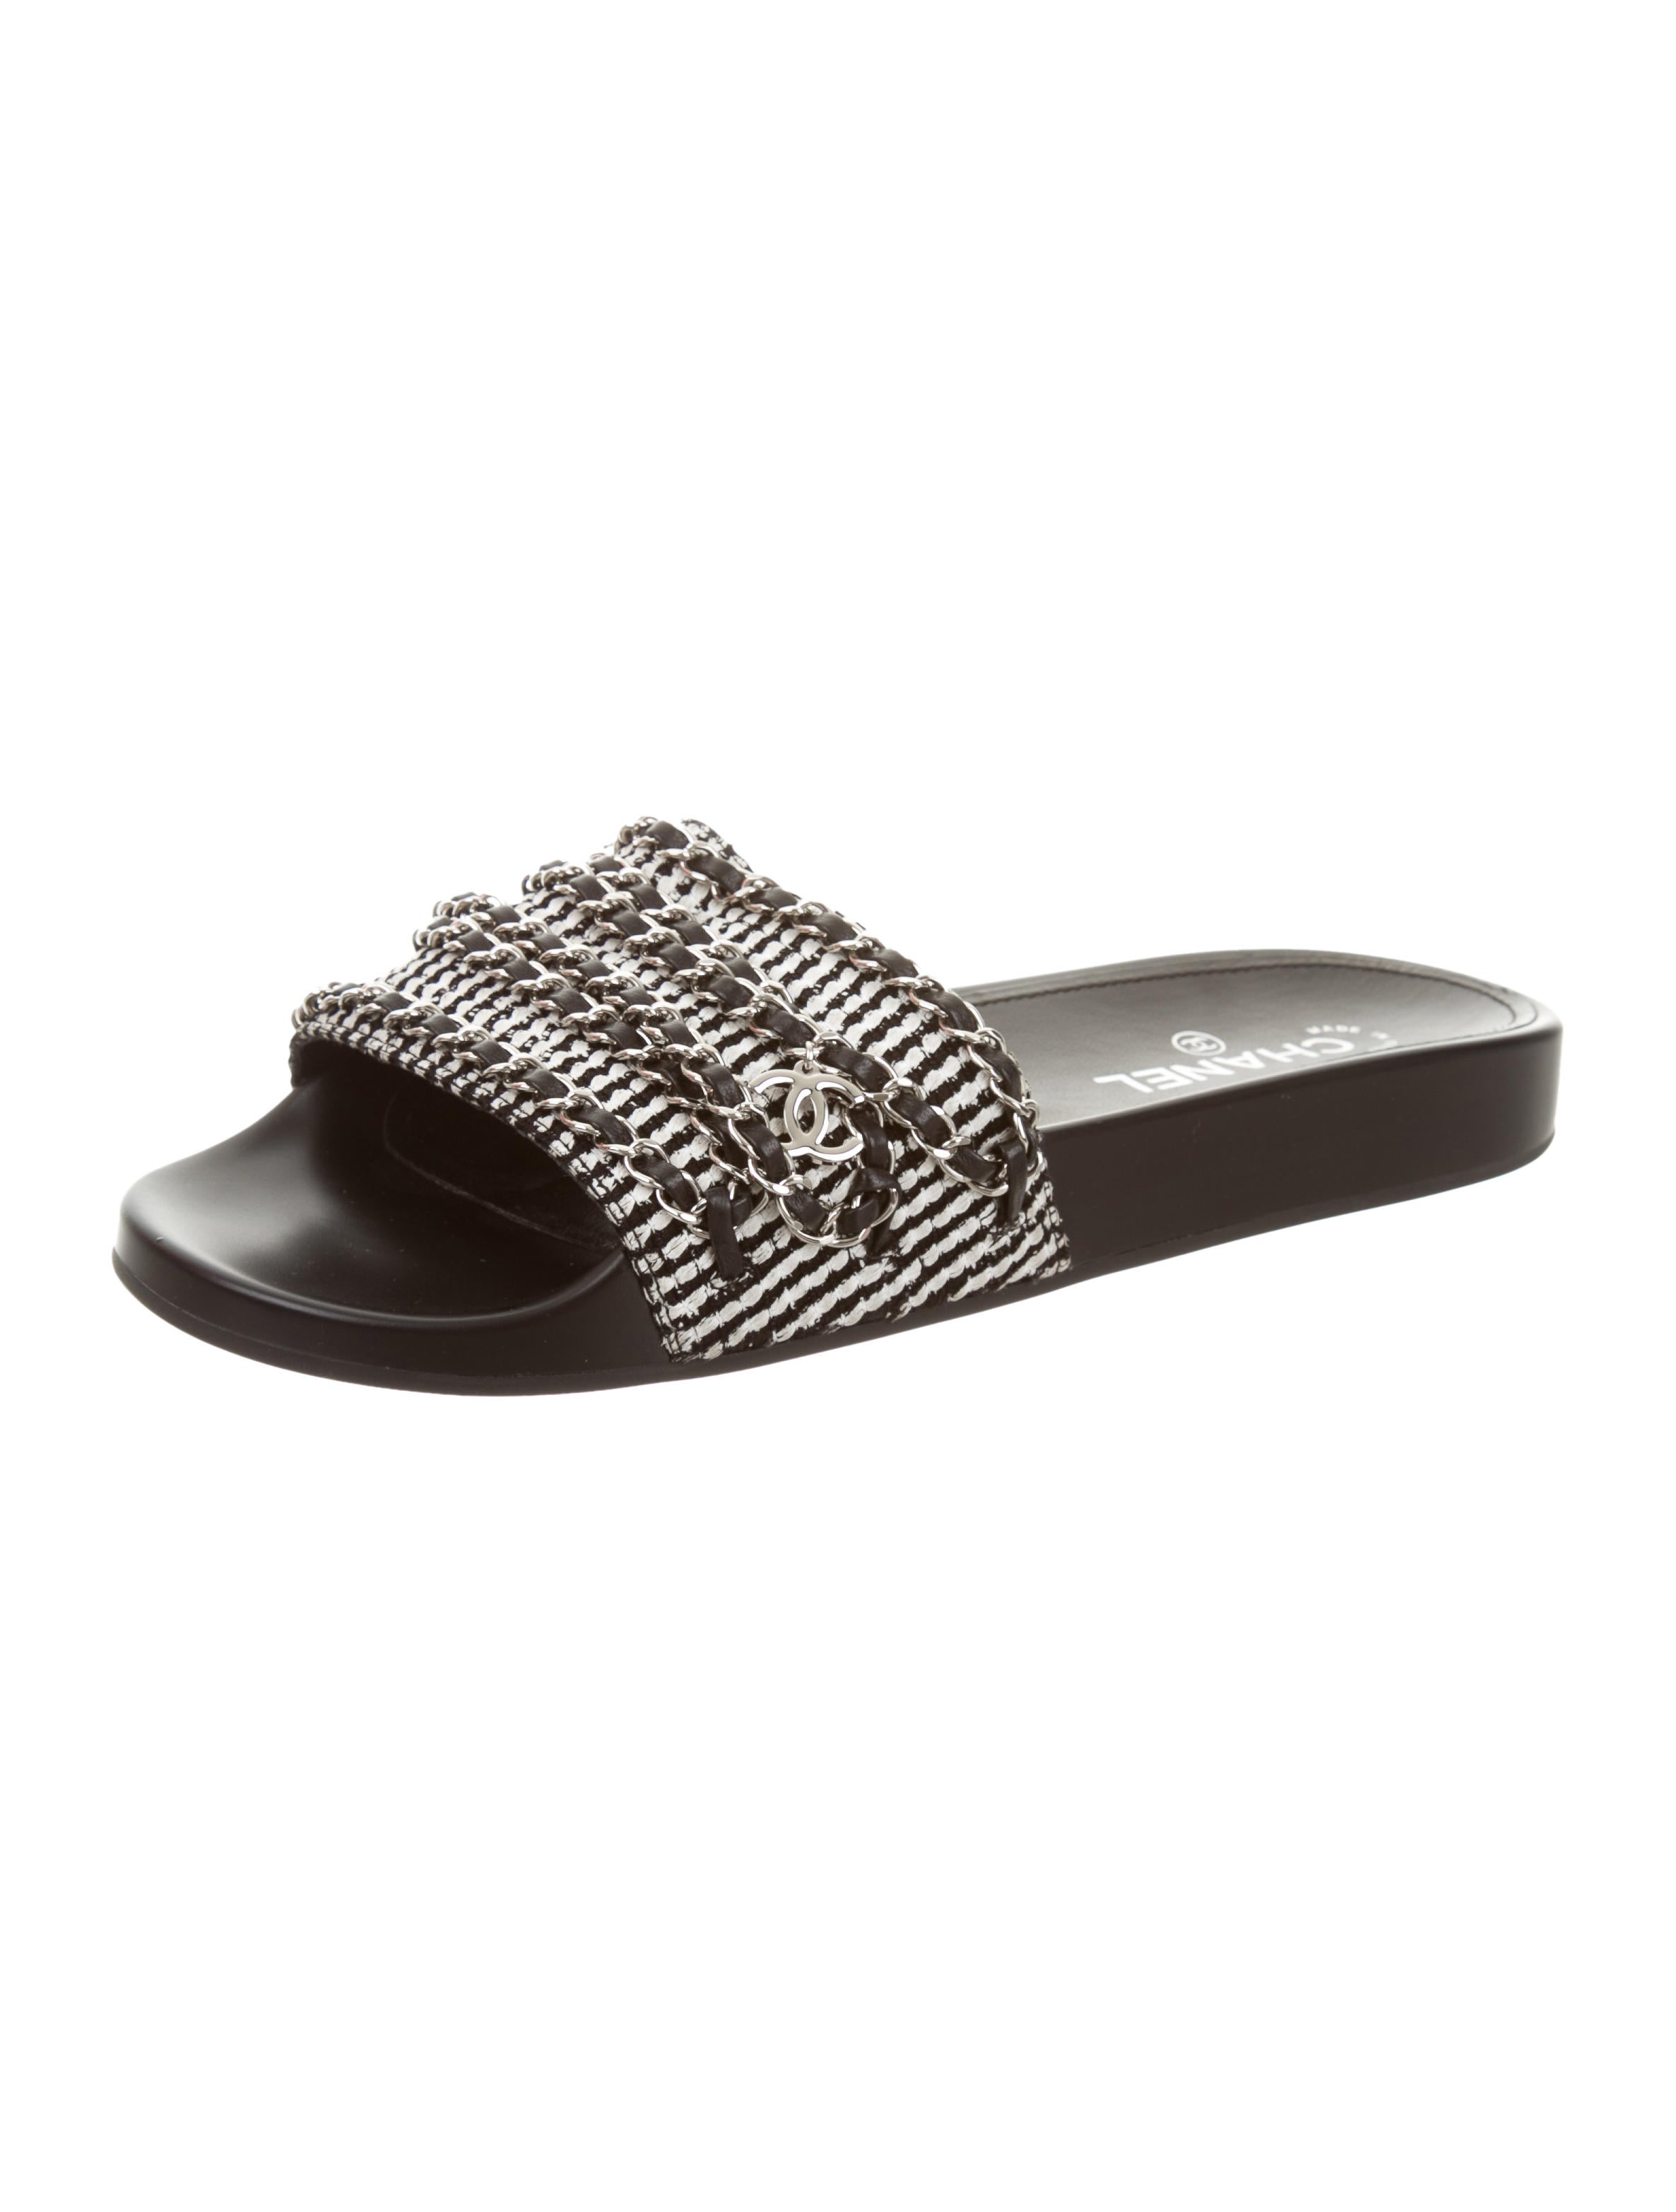 Hermès Chain-Link Slide Sandals w/ Tags for cheap sale online klI8hgpo4W